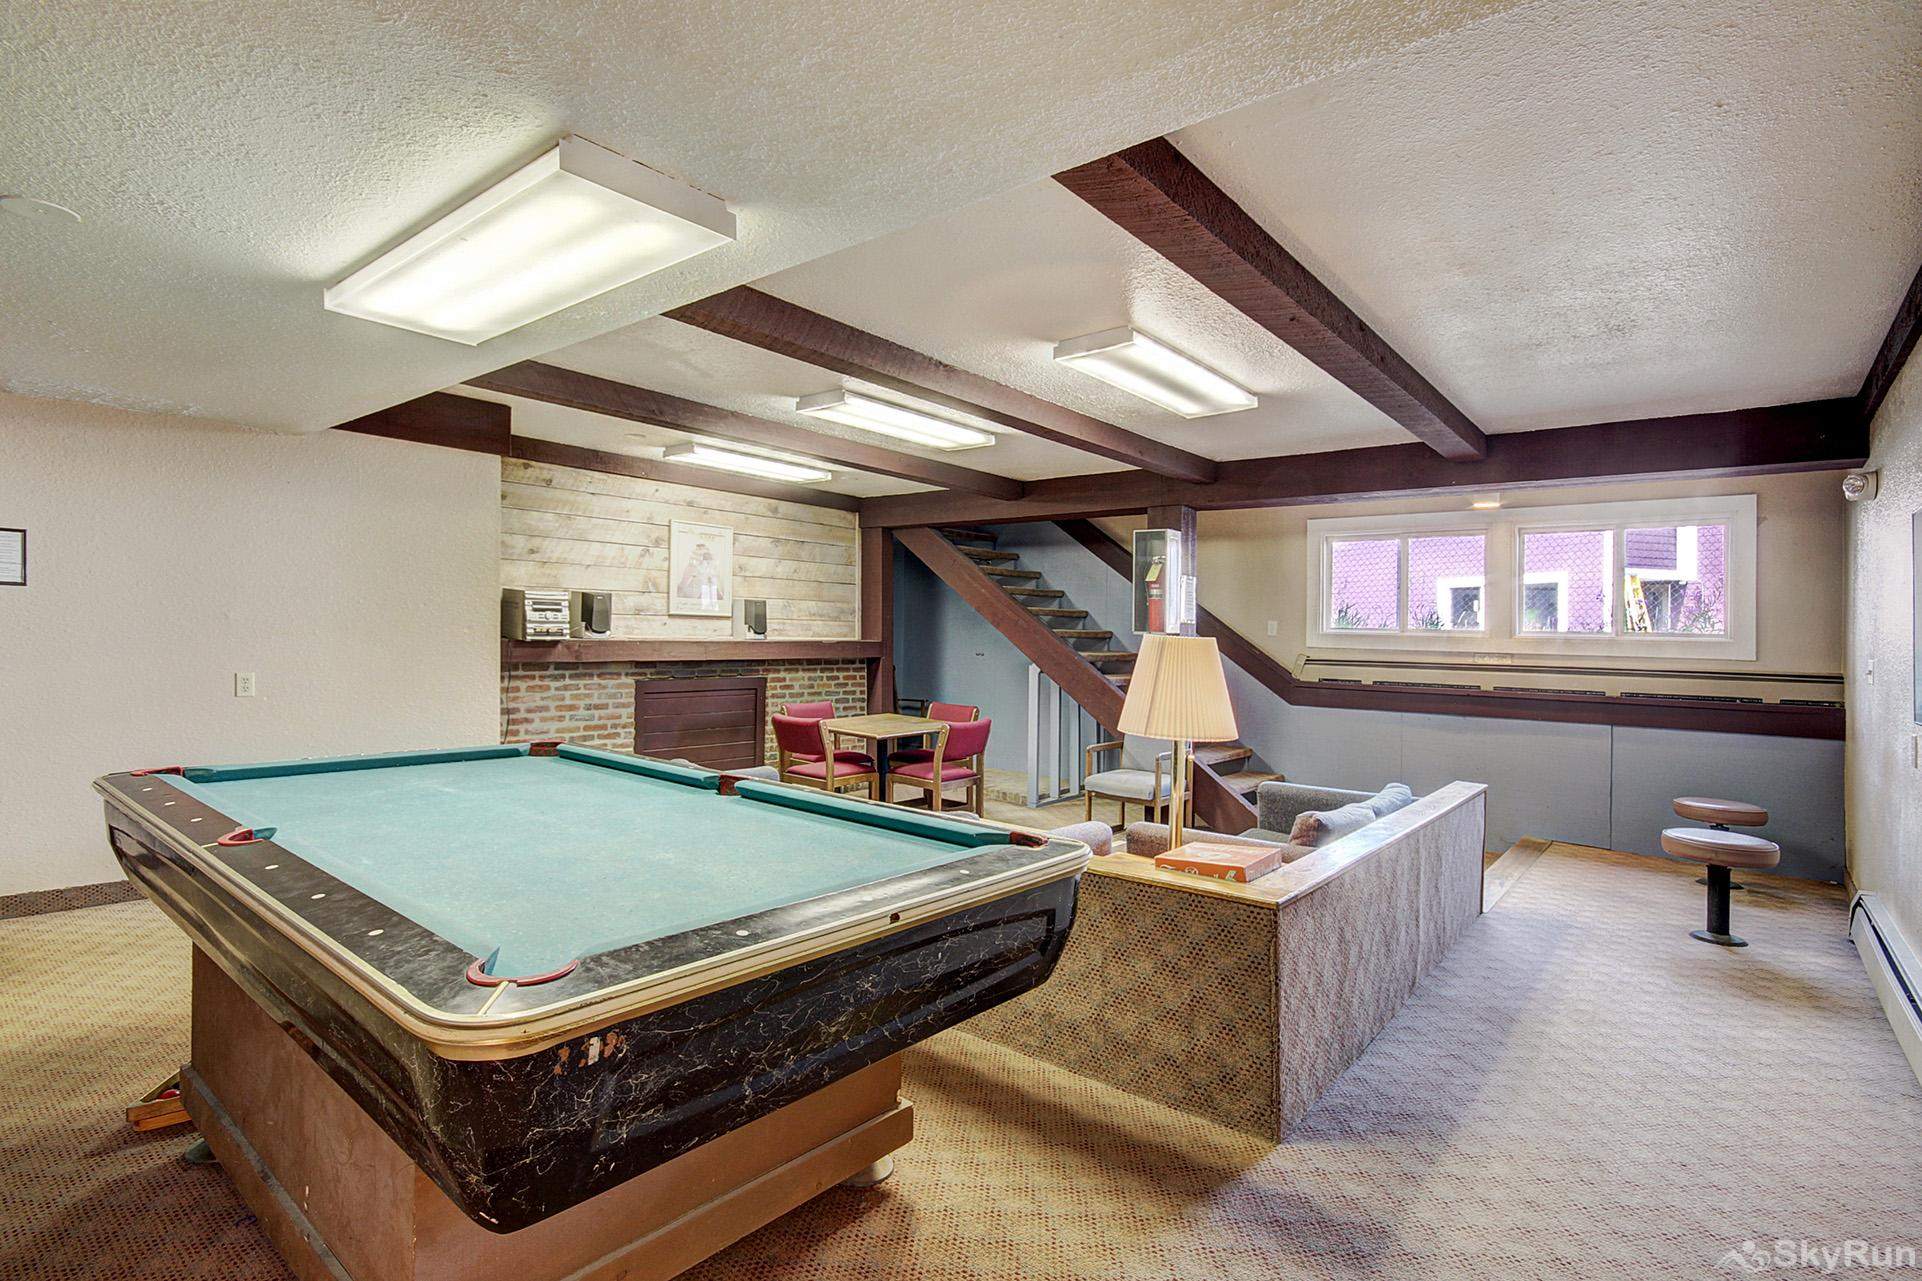 Forest Haus 212 Game room located next to the indoor pool